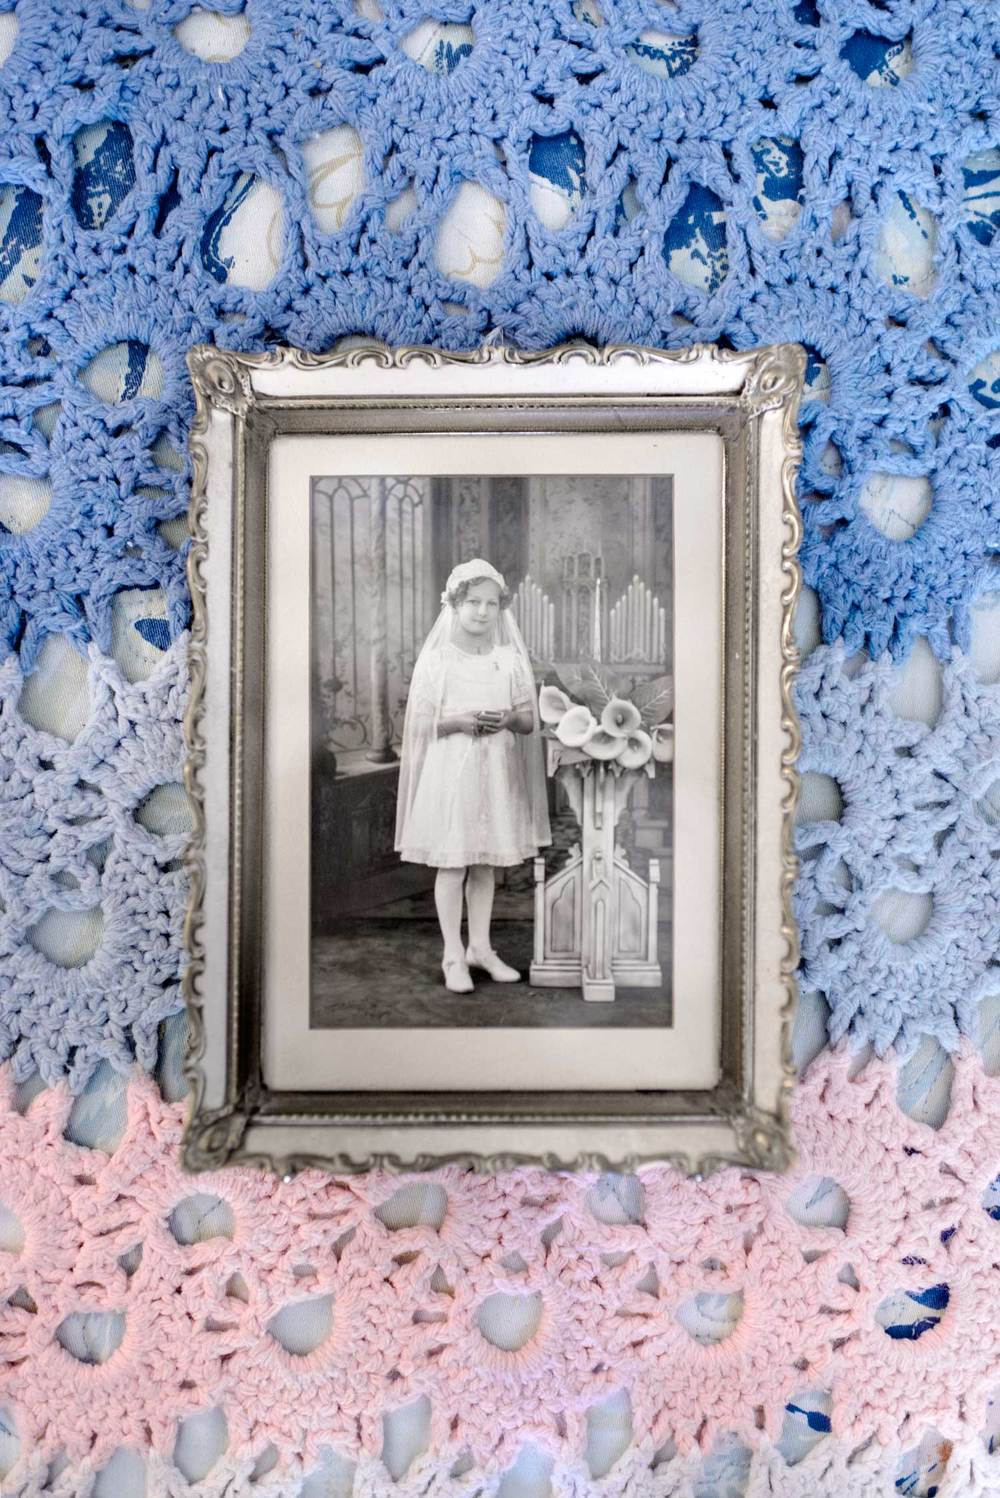 February 2013. The Mother of Reveren Janice Sevre-Duszynska the day of her first holy communion.